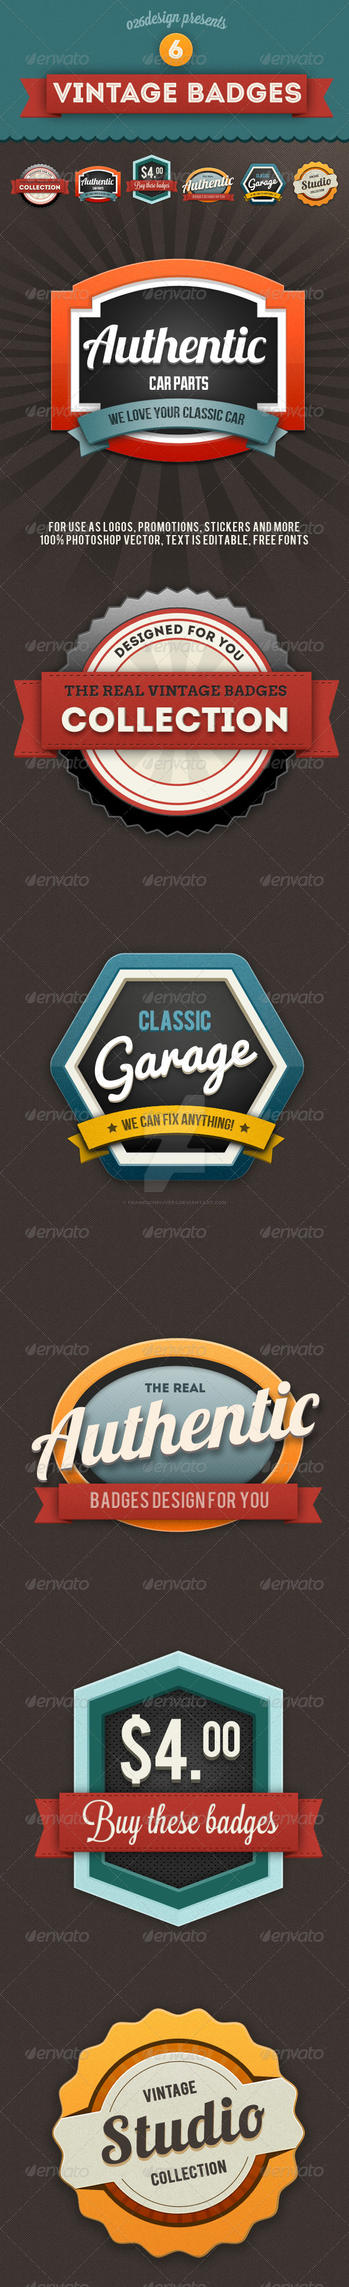 Colorful Vintage Retro Badges by frankschrijvers